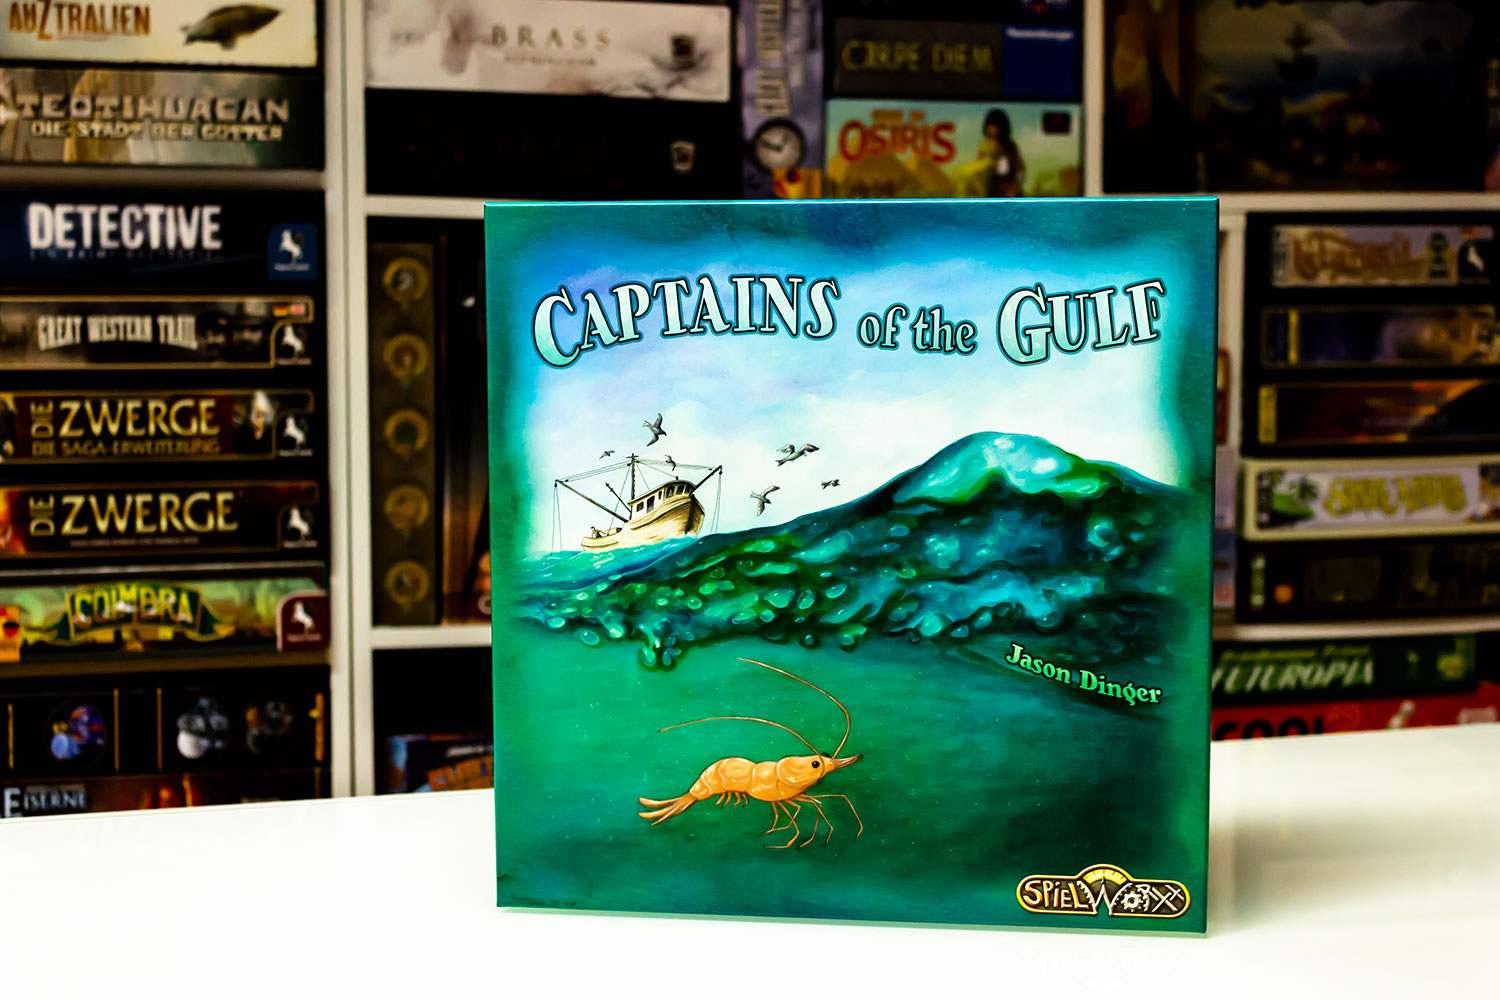 Captains of the Gulf – Bilder vom Spielmaterial